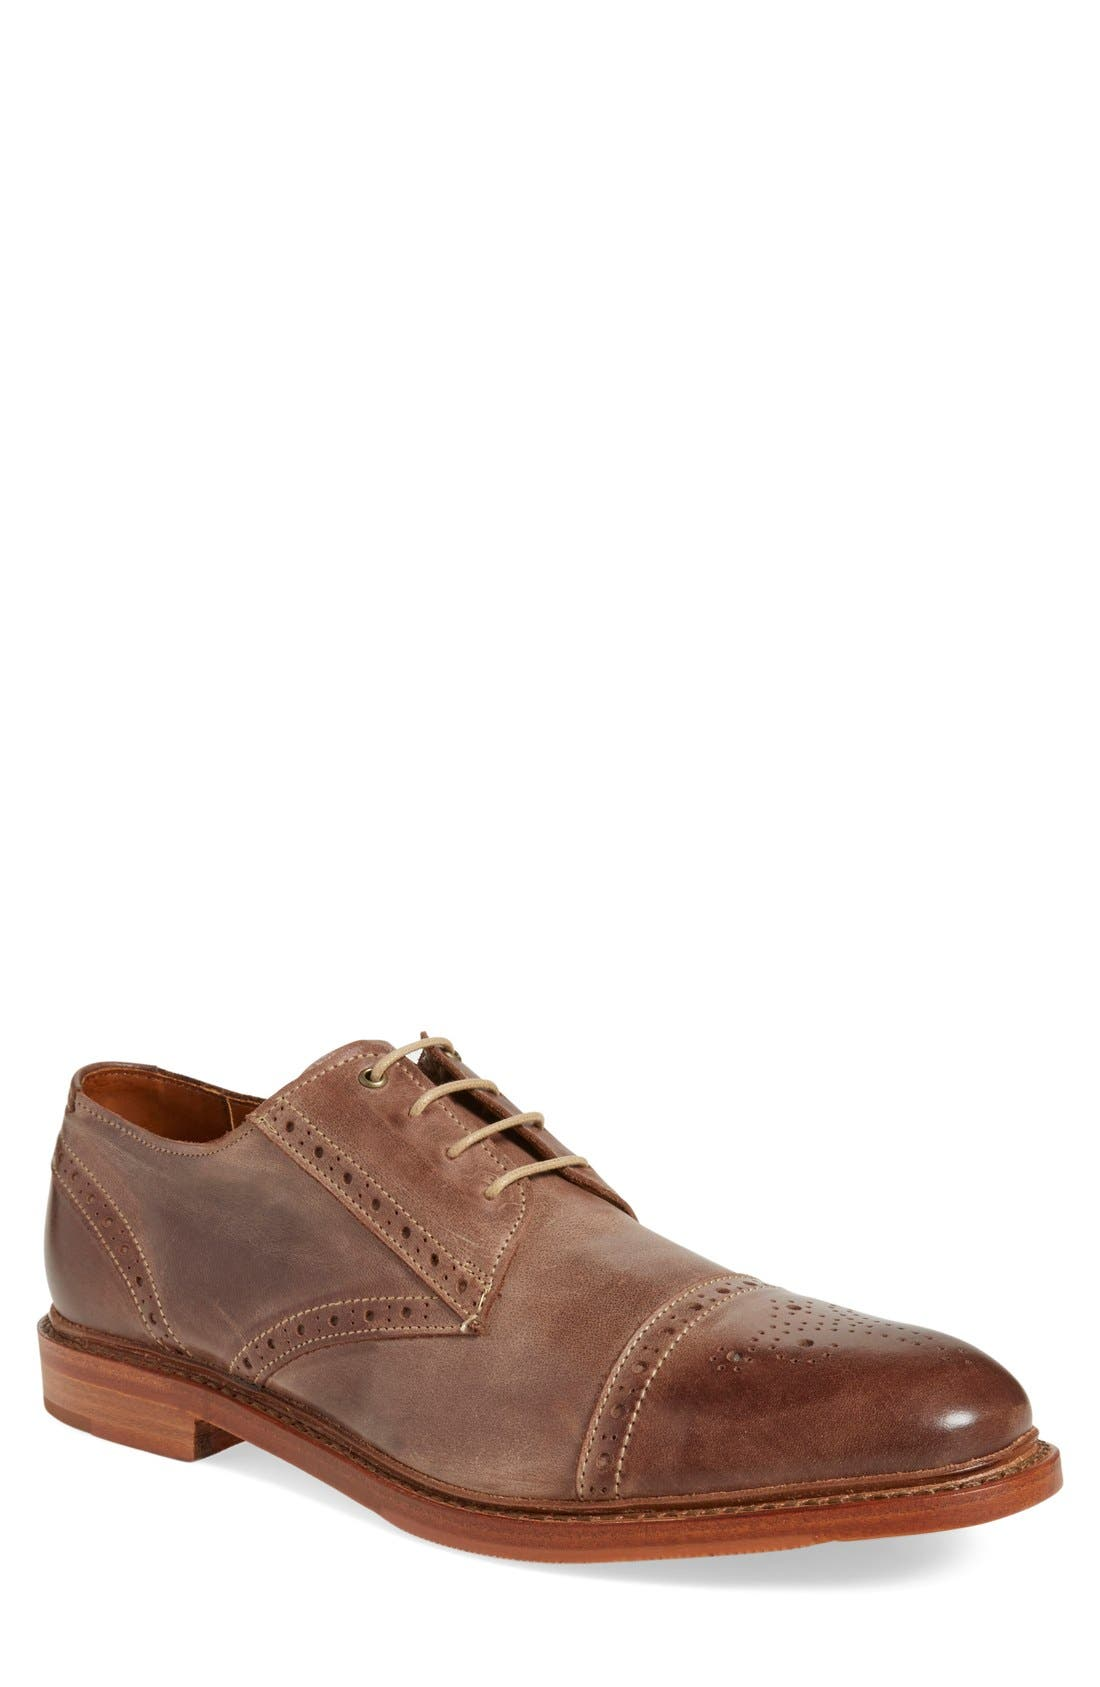 'Bainbridge' Cap Toe Derby,                             Main thumbnail 1, color,                             BROWN LEATHER